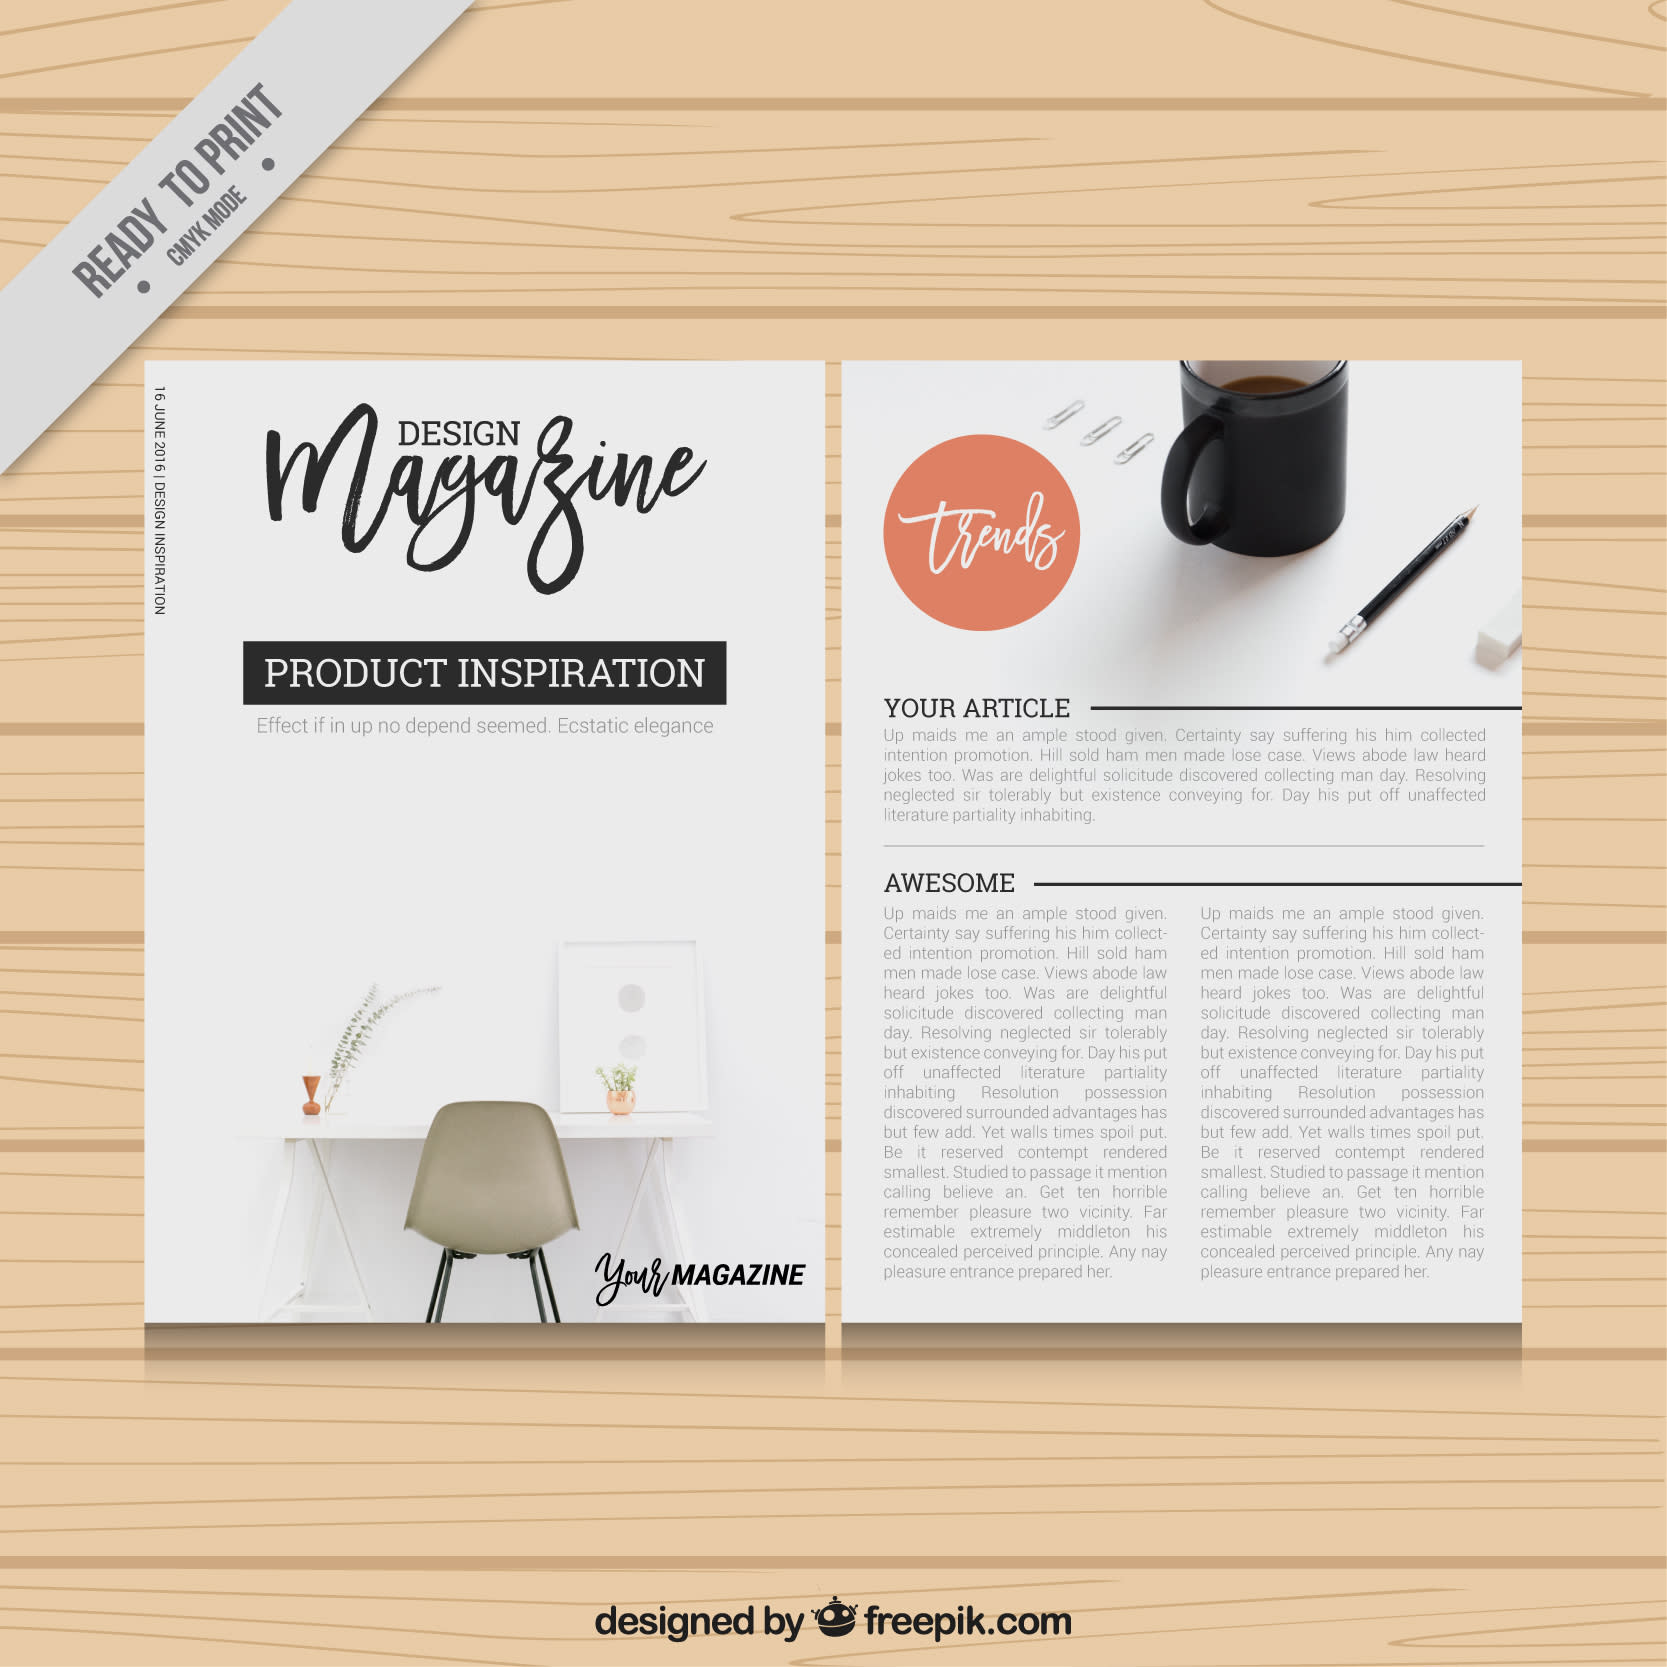 table graphic design inspiration examples design magazine template 150 free book and logo mockups for graphic designers